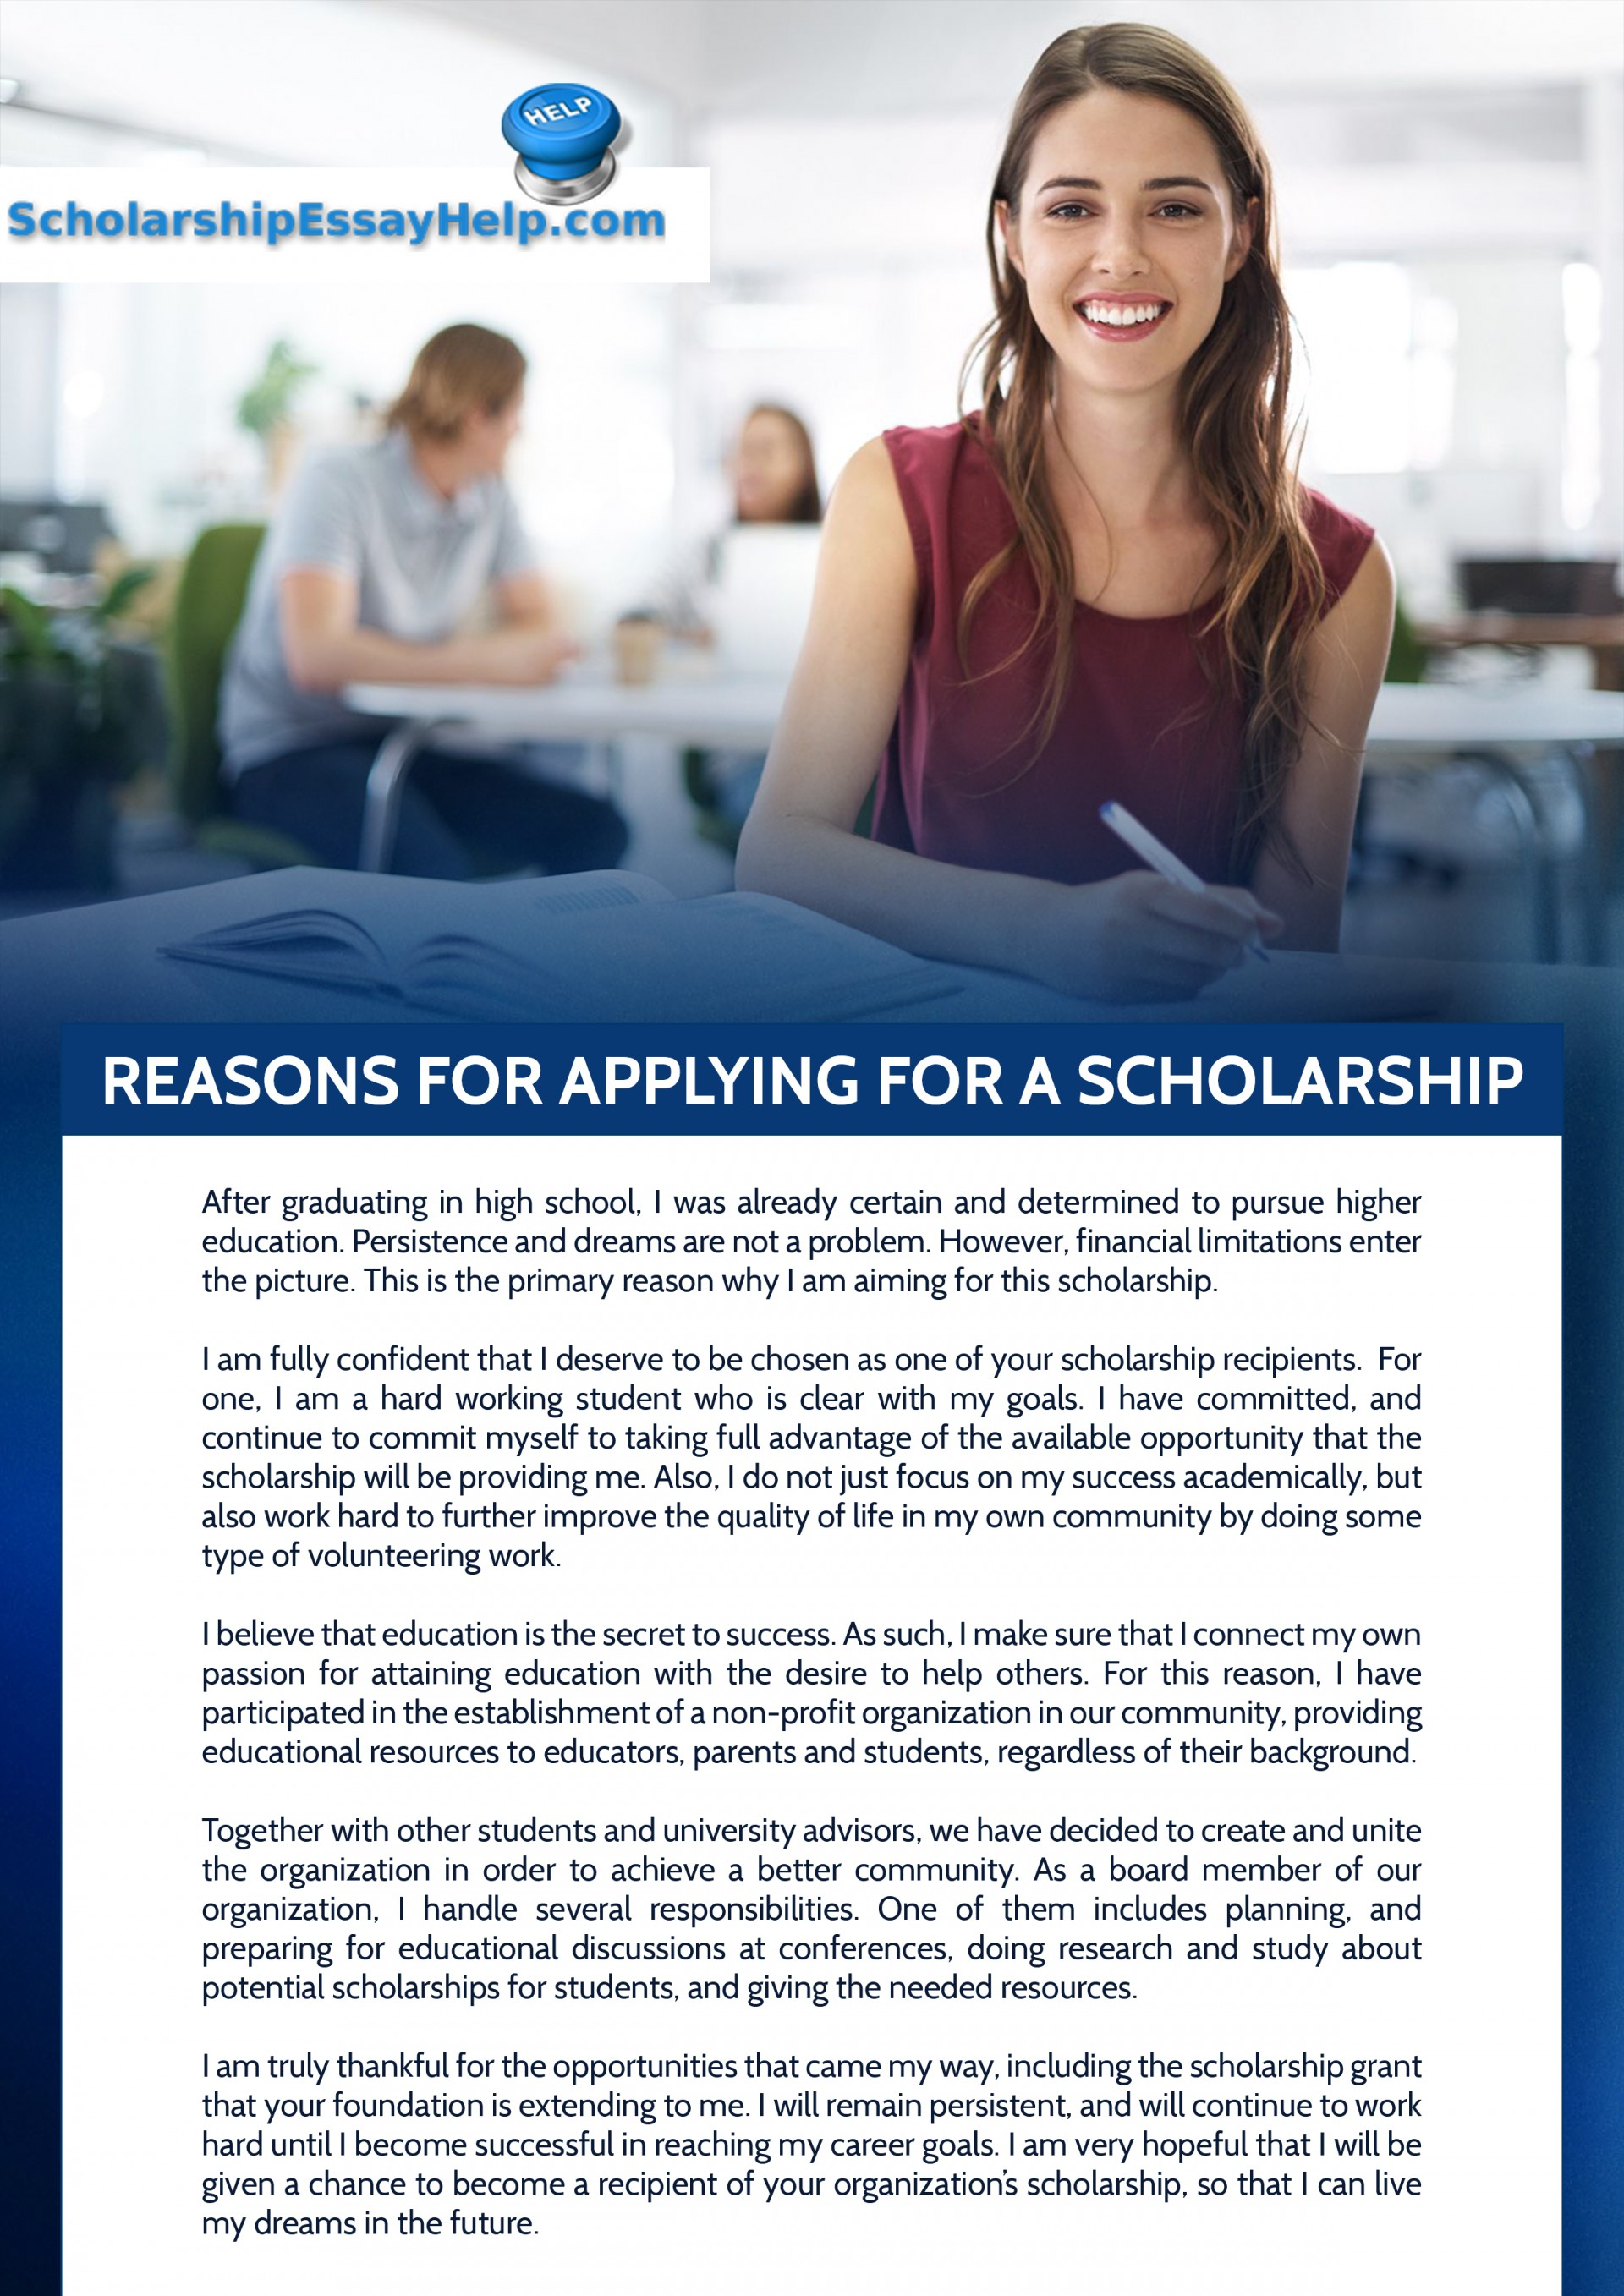 013 Reasons For Applying Scholarship Why I Deserve This Essay Top How To Write Pdf Sample 1920